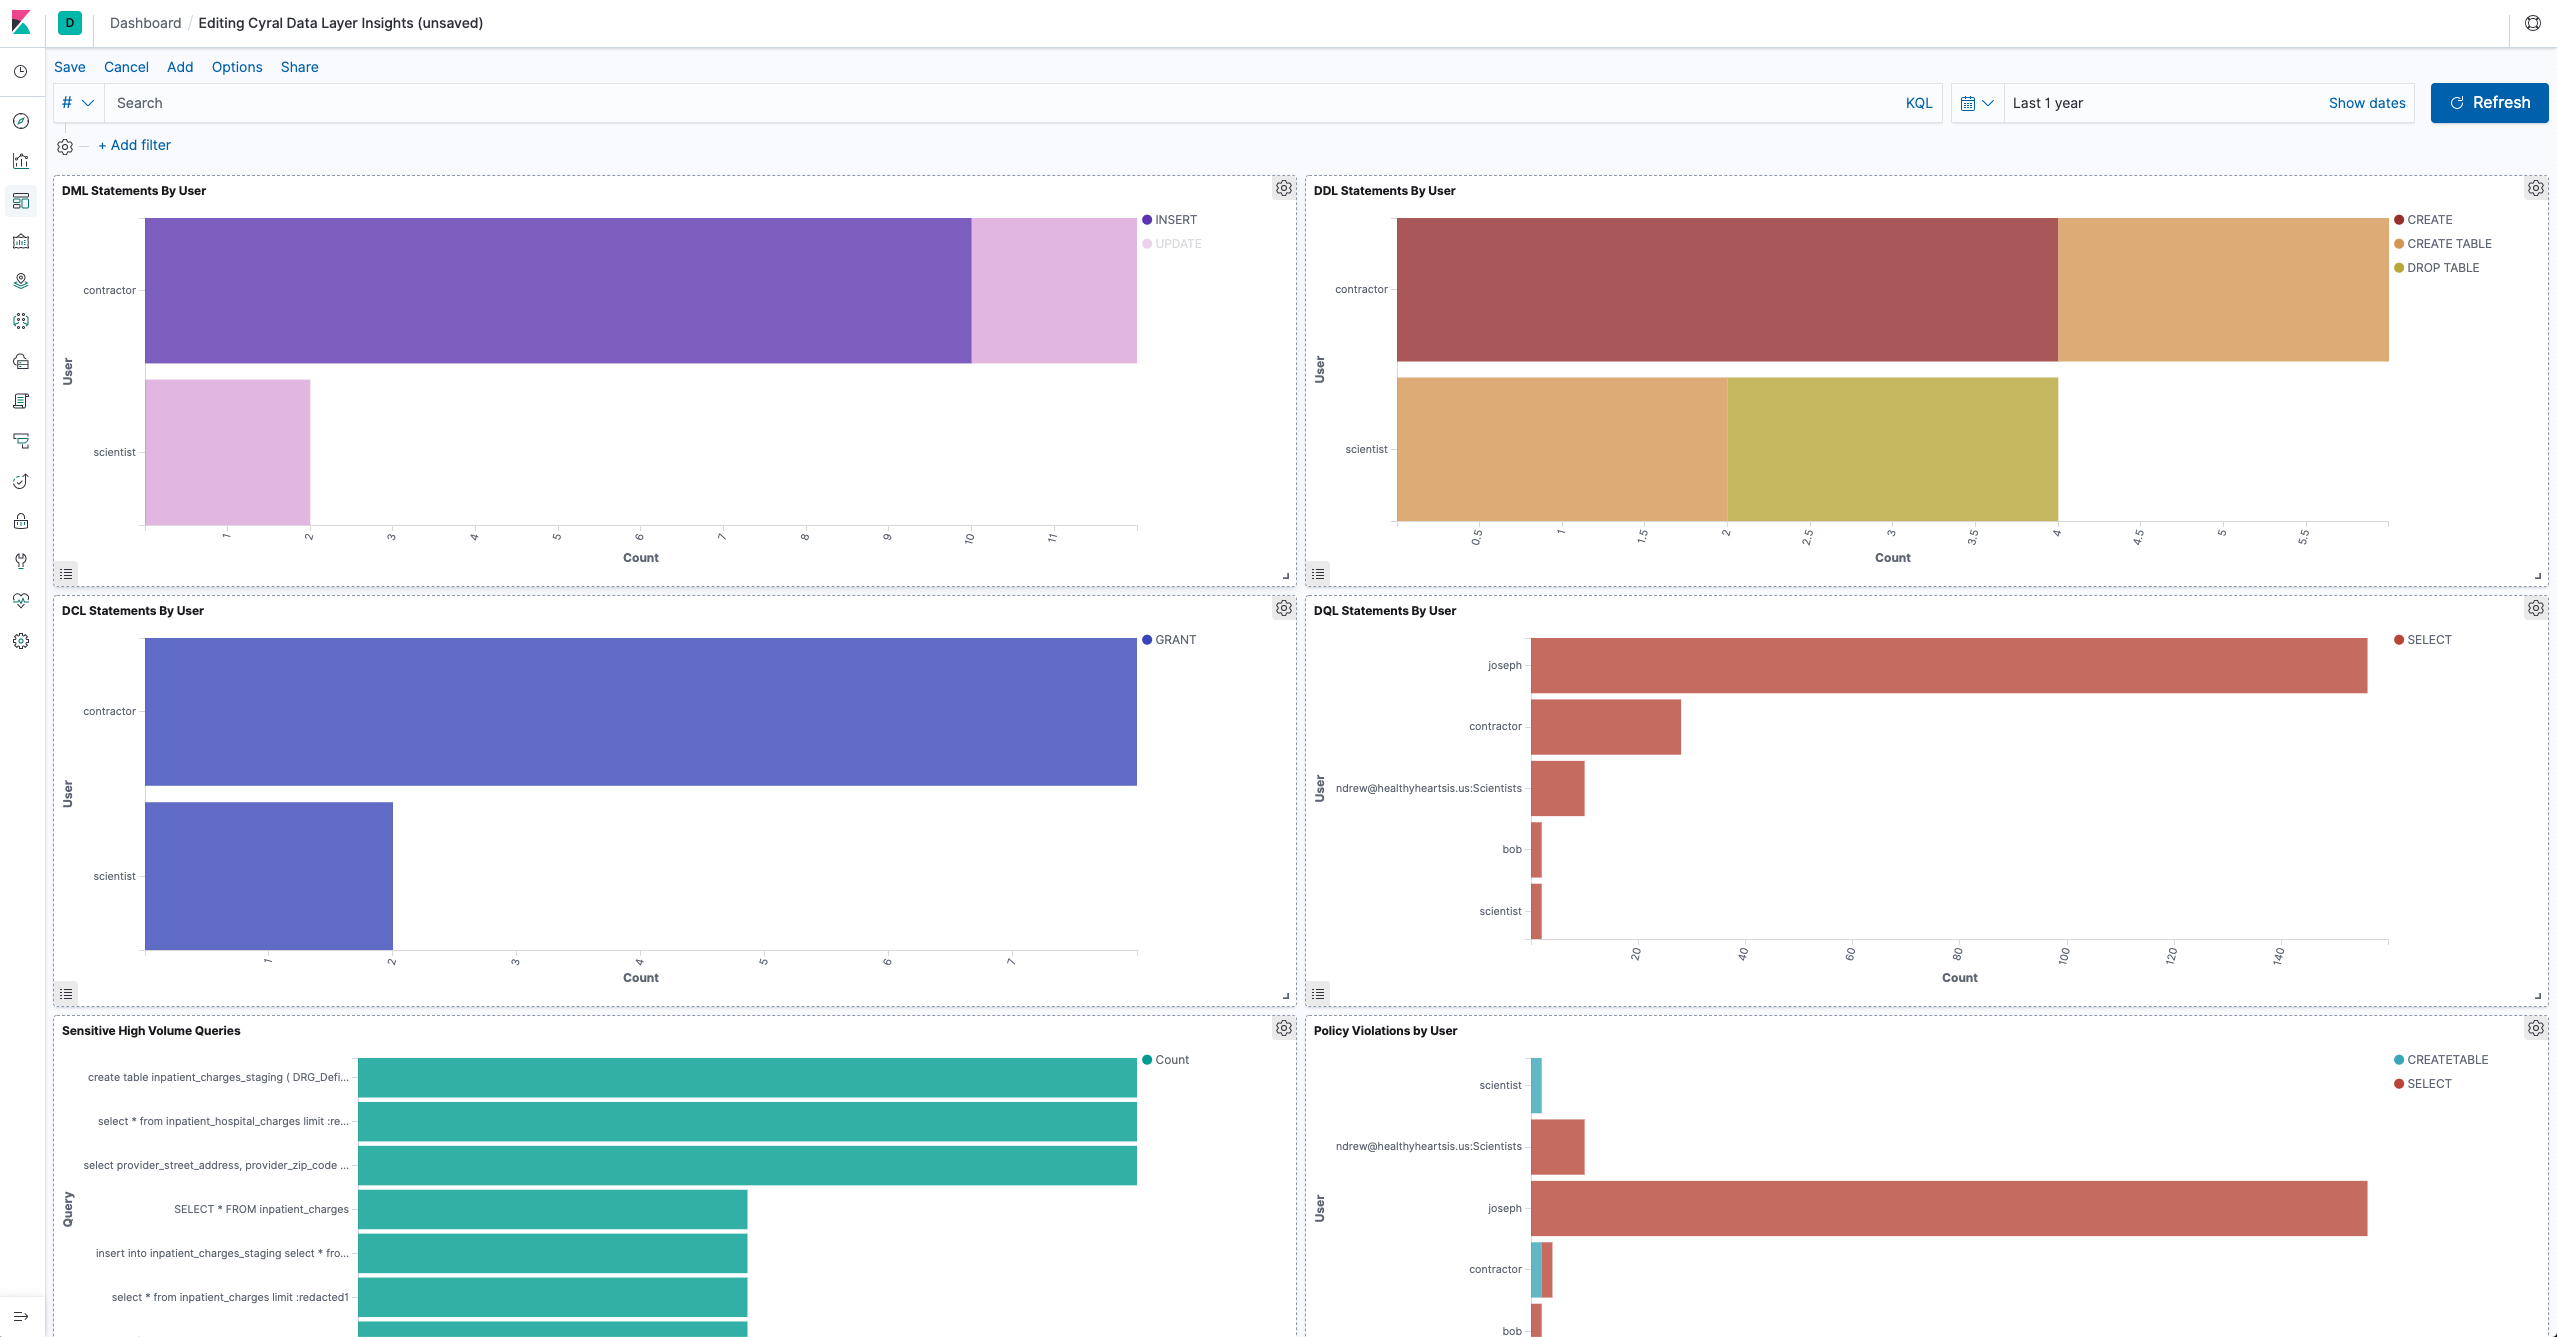 Kibana data visualization dashboard showing proportions of different SQL query types run on databases